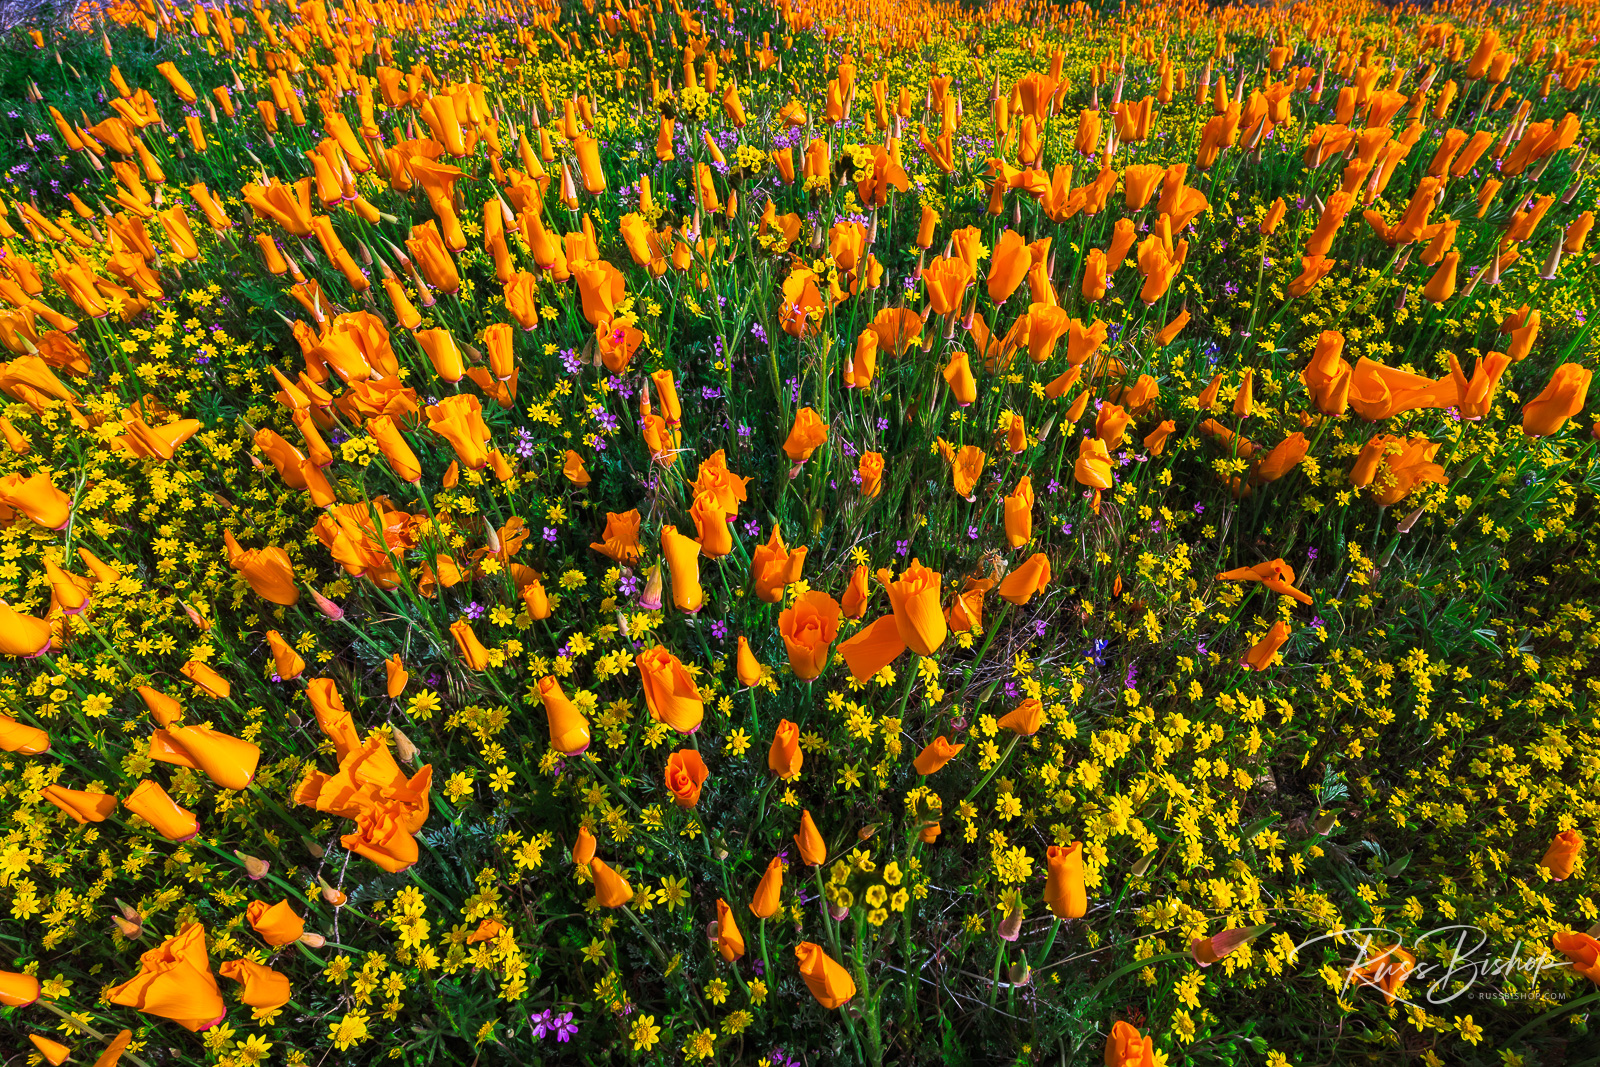 California Poppies and Goldfield, Antelope Valley, California